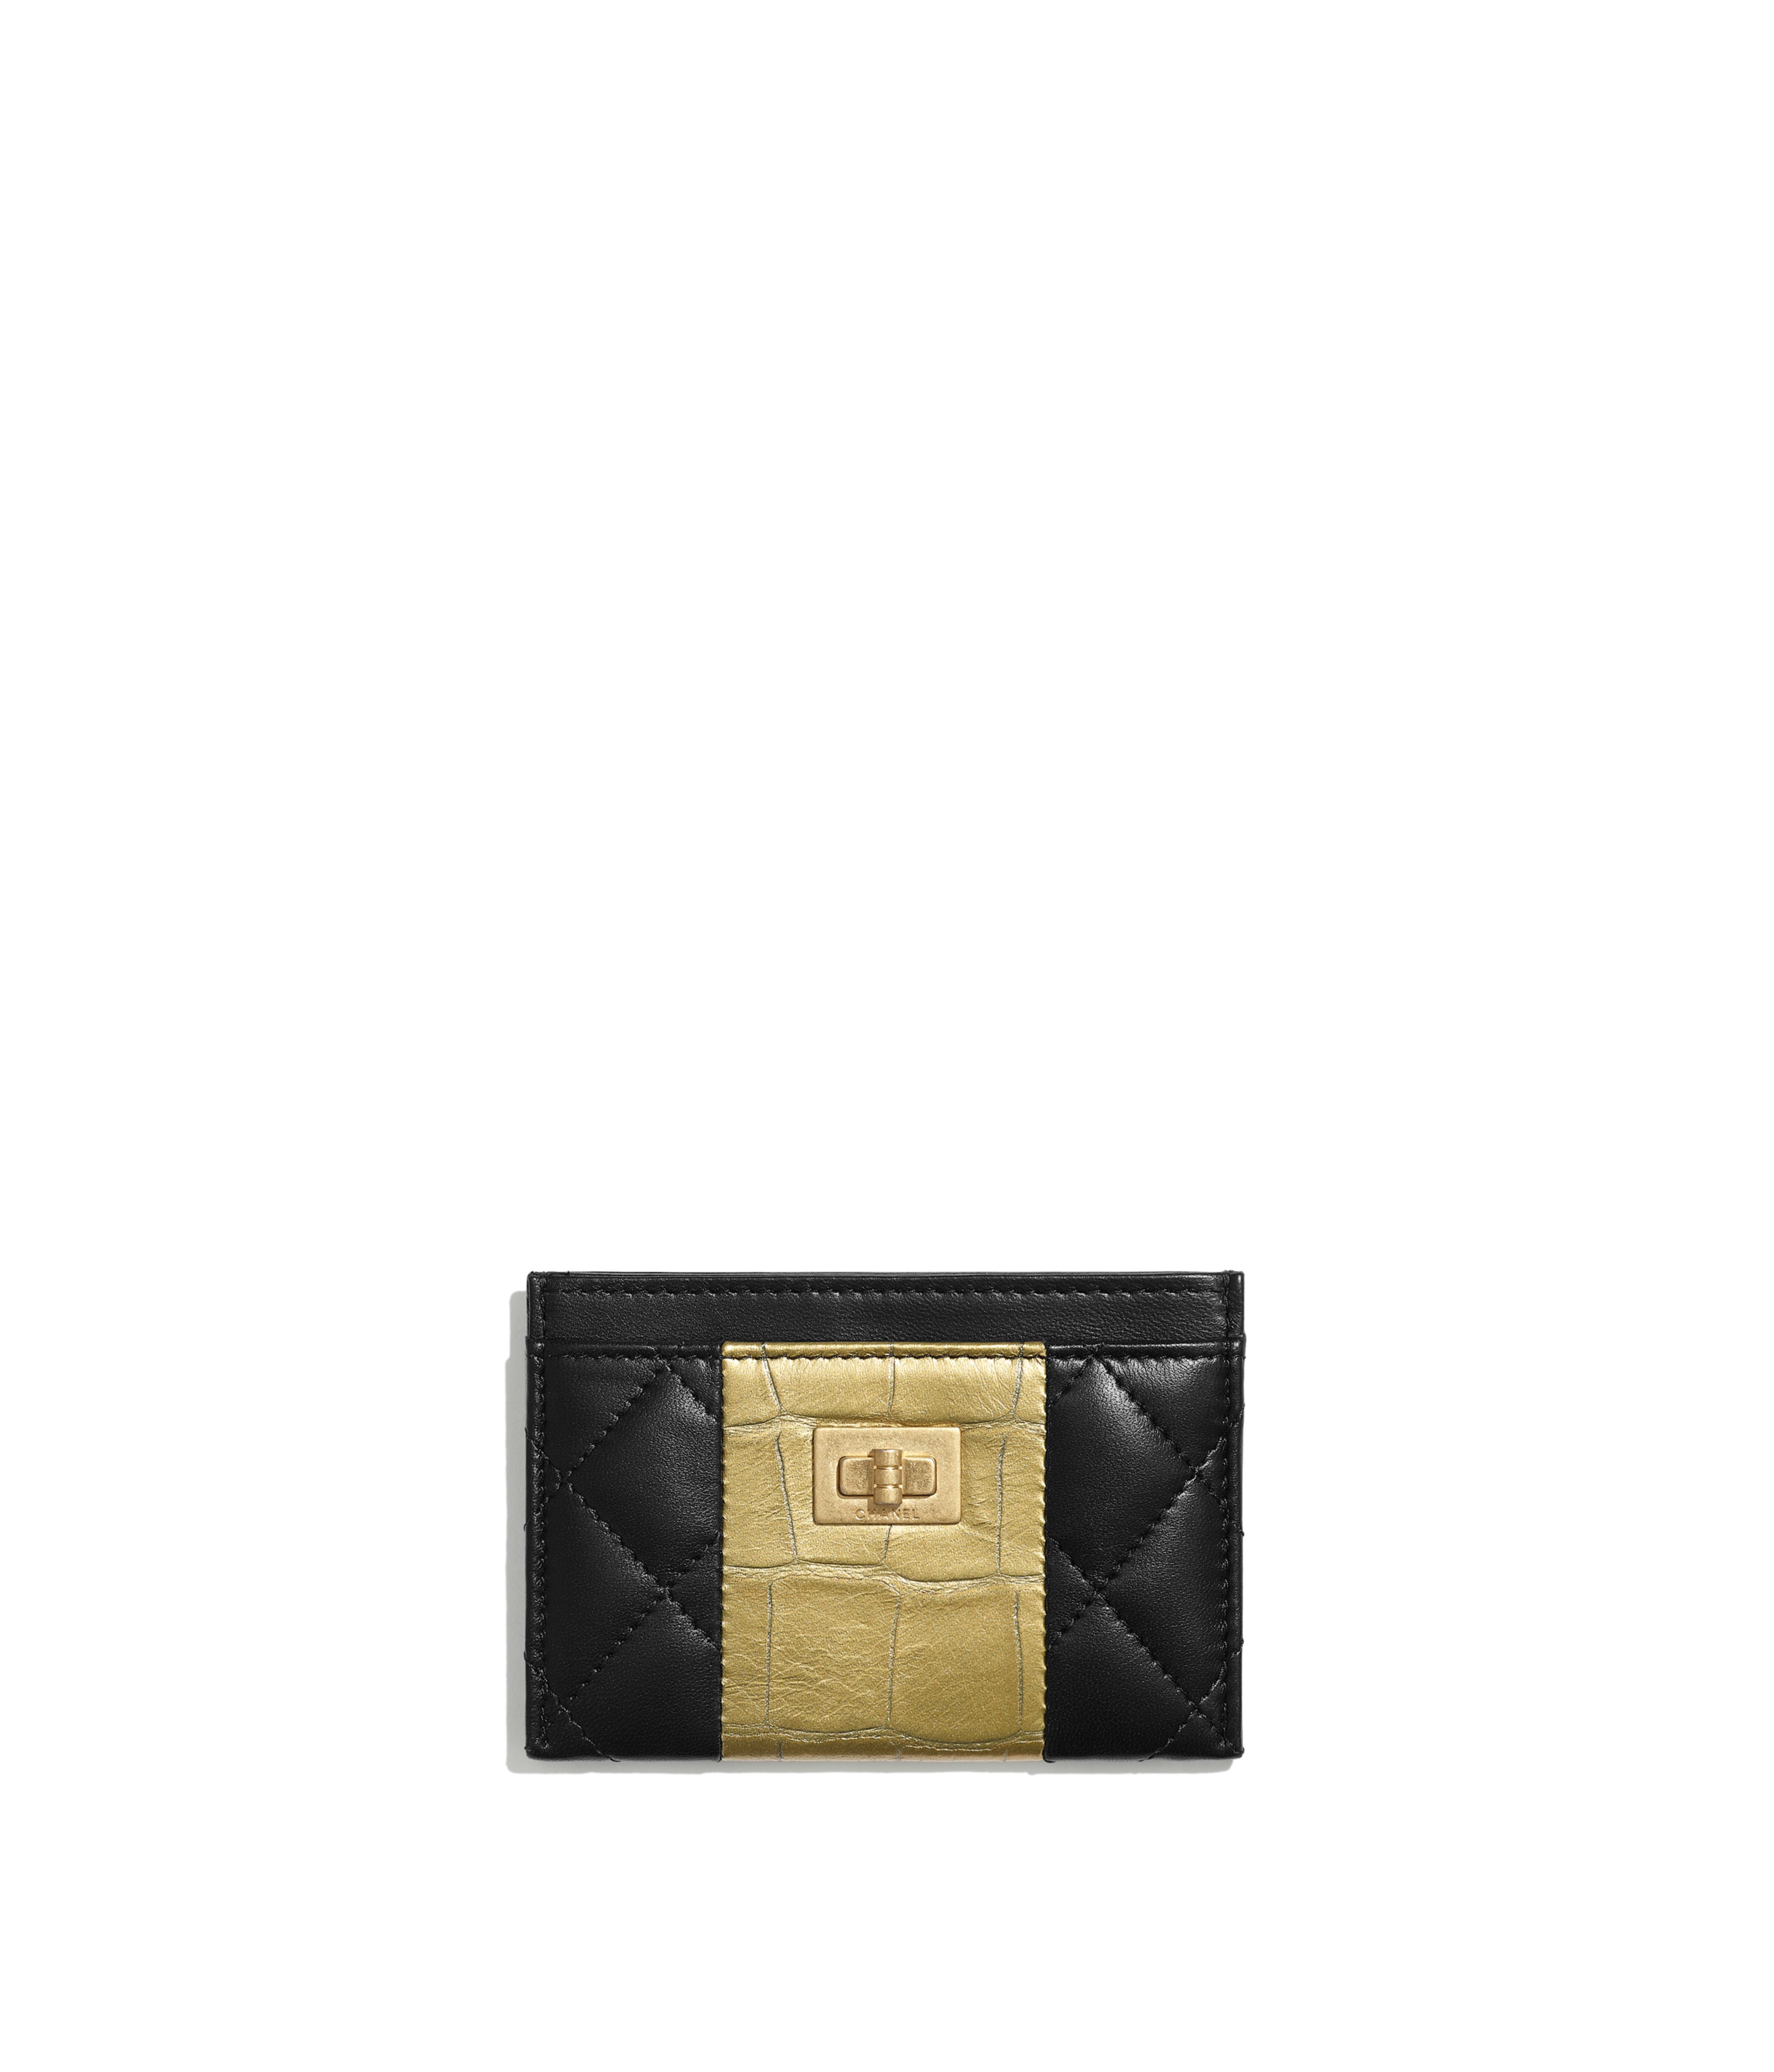 f6a296c8ed Card Holders - Small leather goods | CHANEL